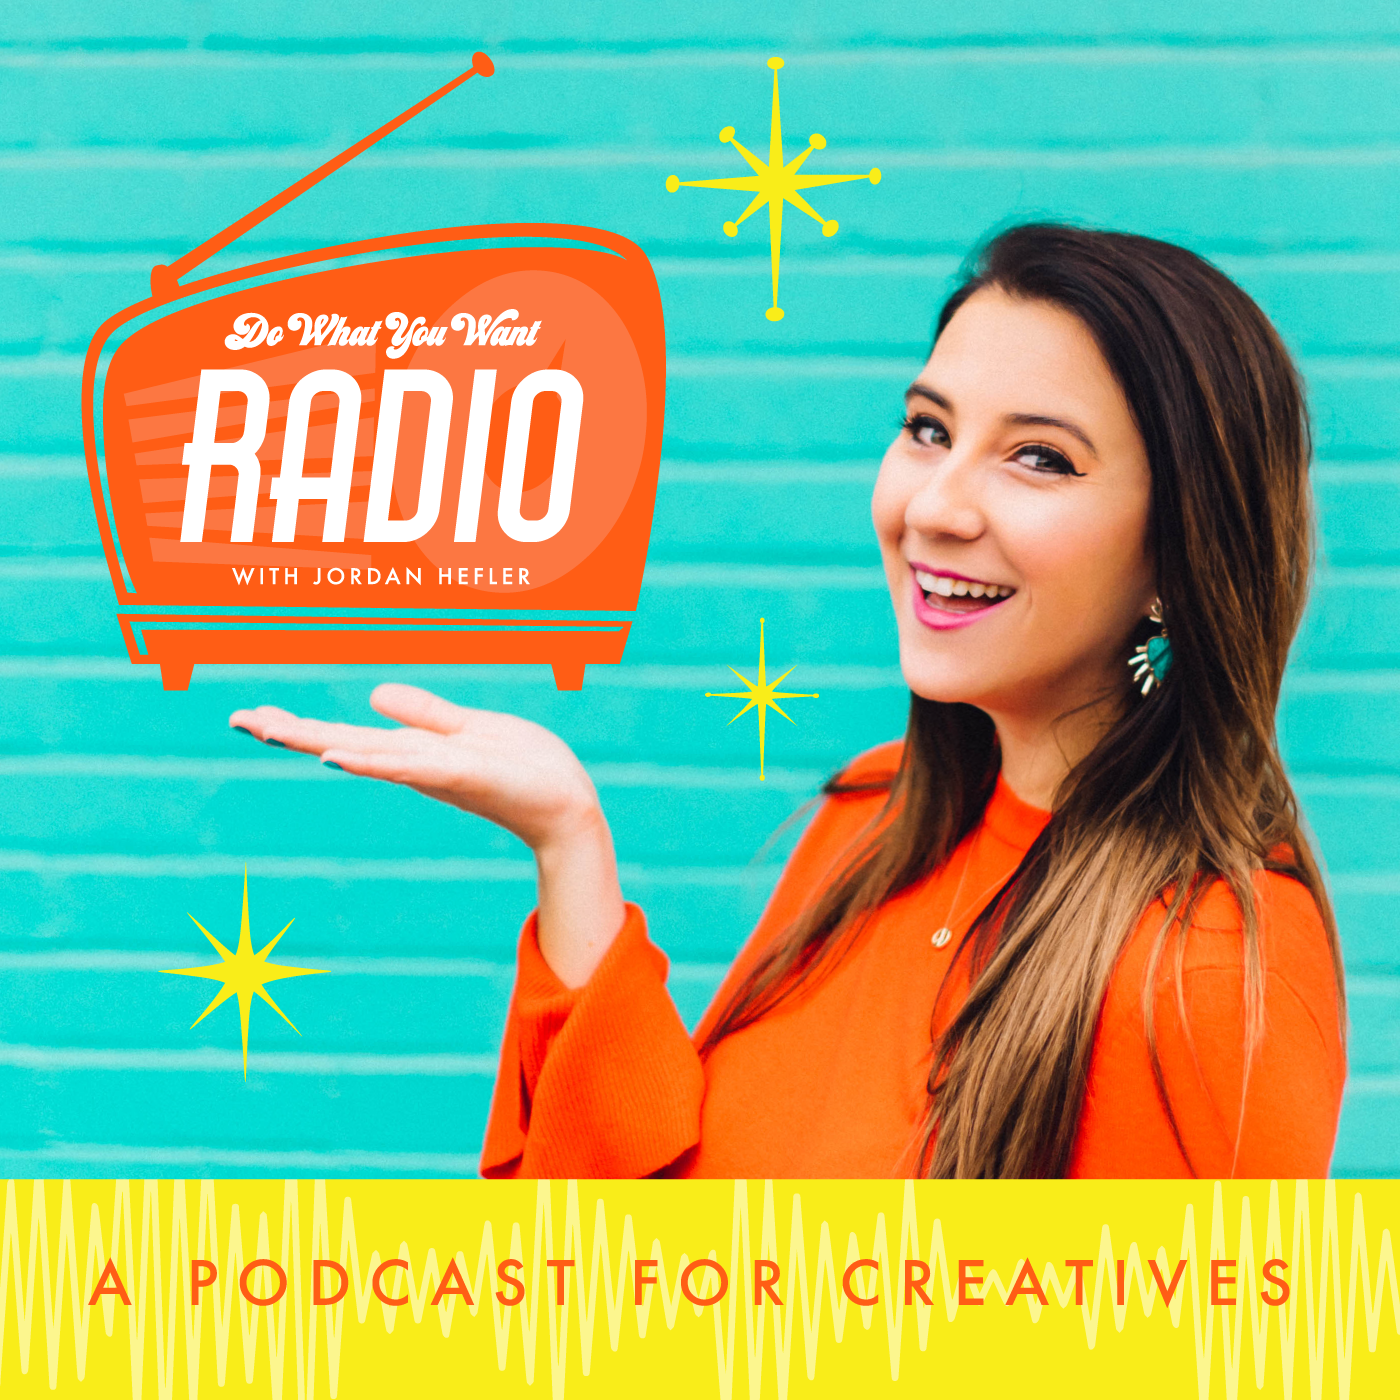 3 Things You Need to Start a Podcast | Jordan Hefler